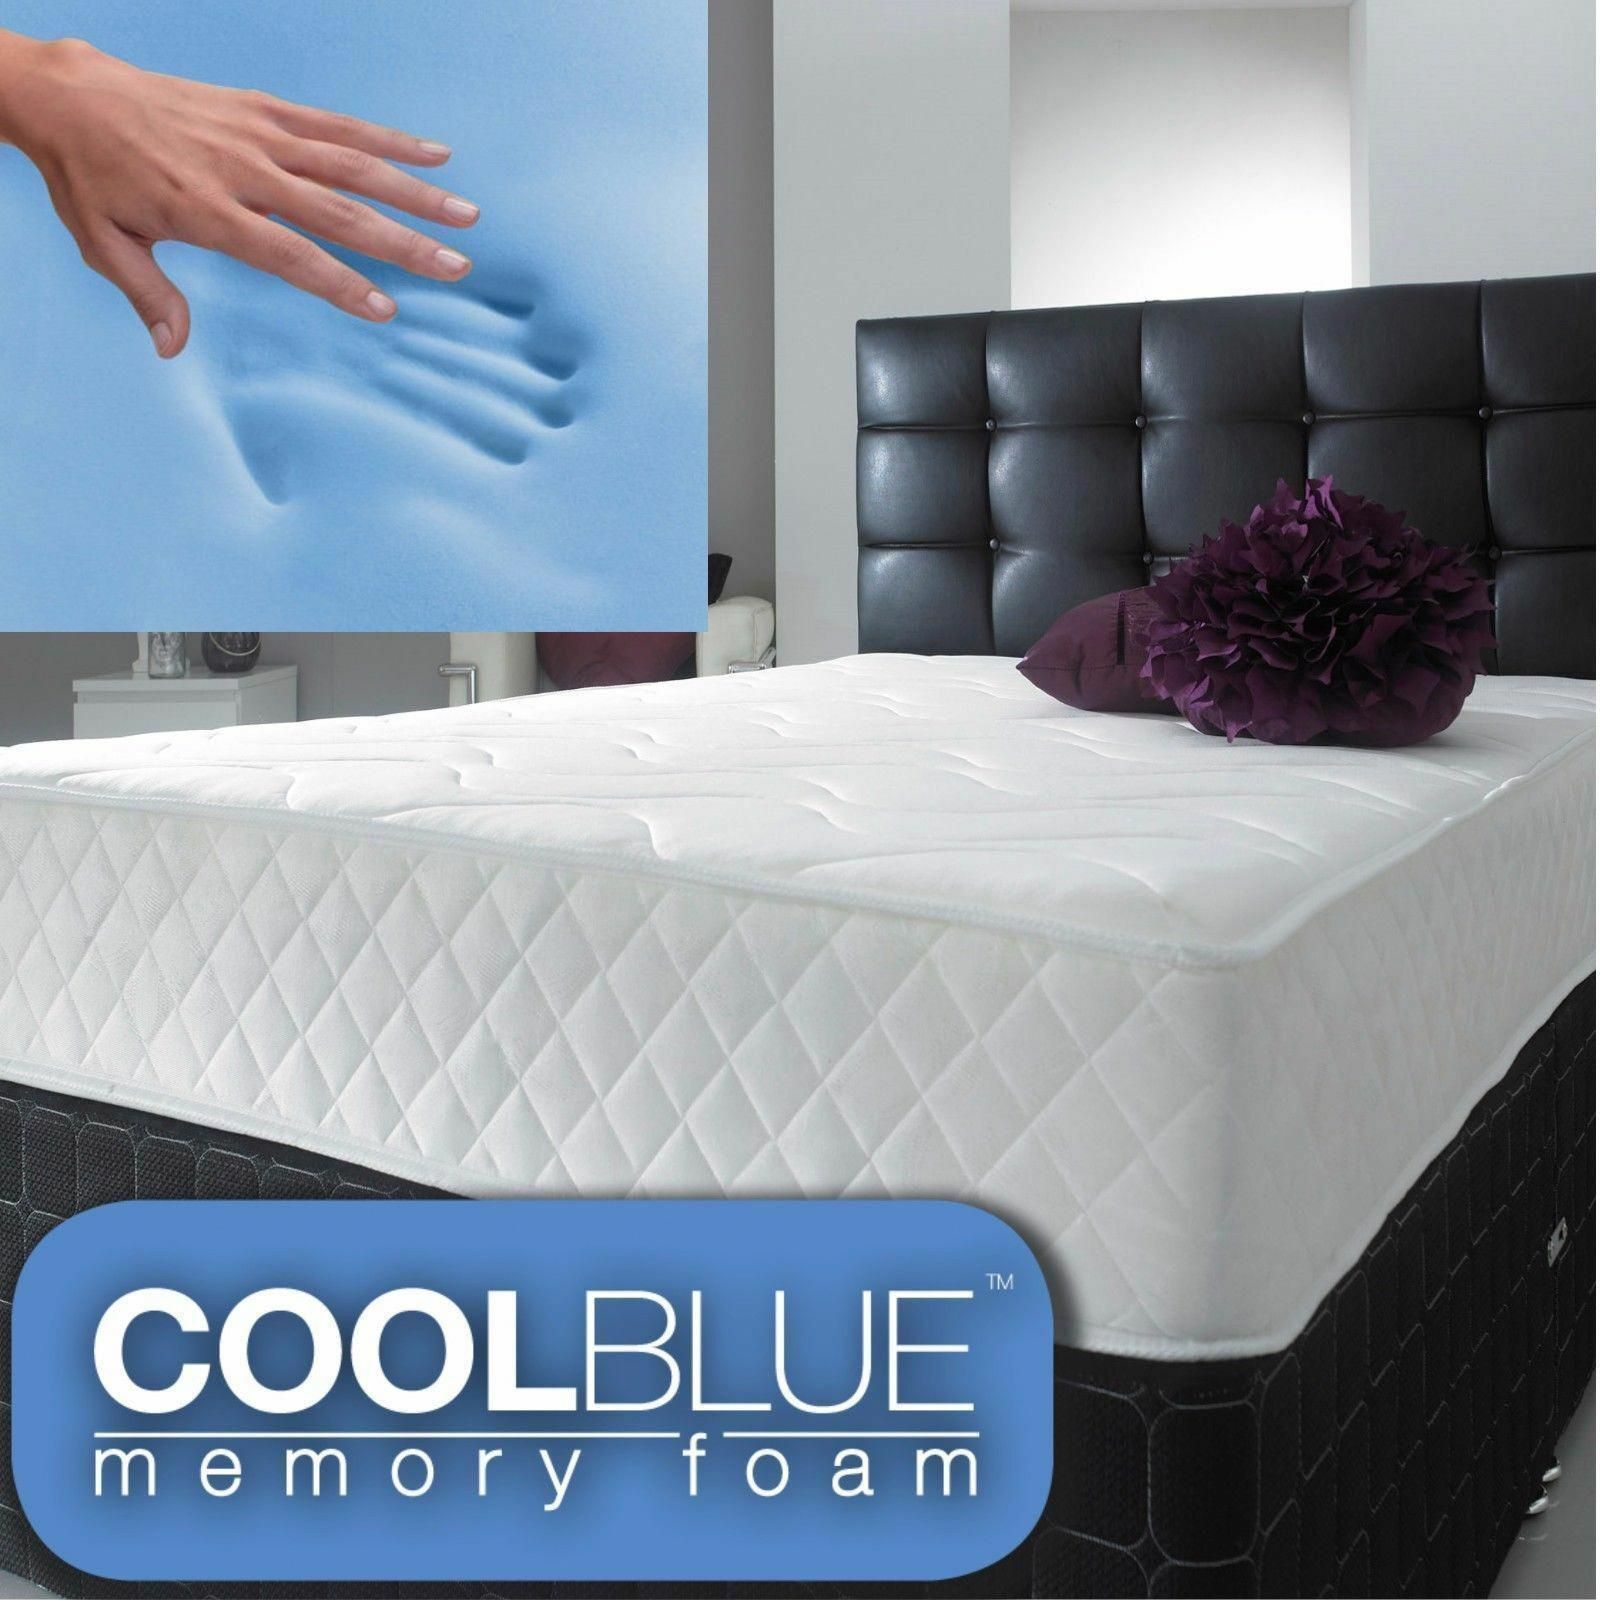 Cheap Cool Blue Open Coil Memory Foam Single Double King Size Rolled Mattress 59 95 Memoryfoammattressbest In 2020 Fabric Bed Frame Mattress Fabric Bed